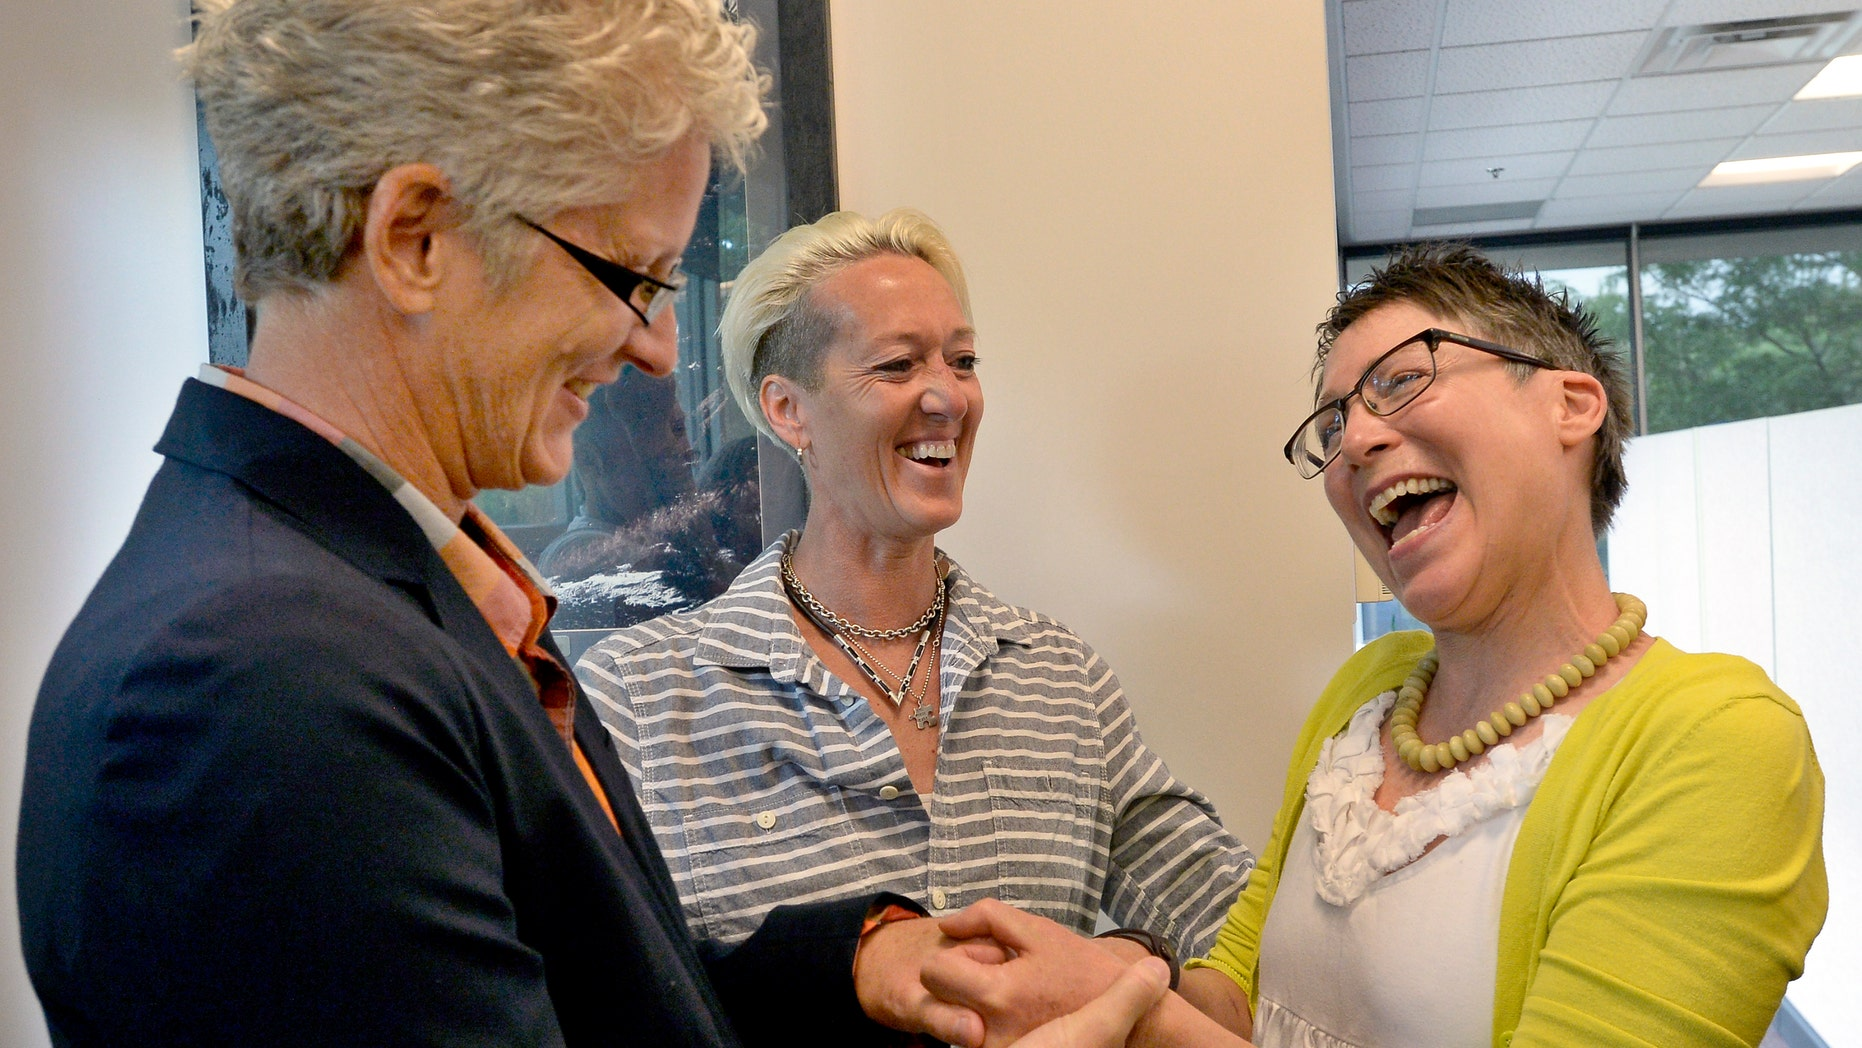 July 1, 2014: Julie Hoehing, left, and Nancy Cooley, right, laugh after friend Dana Derichsweiler, middle, performed a marriage ceremony at the Boulder County Clerk and Recorder'ss Office in Boulder, Colo.